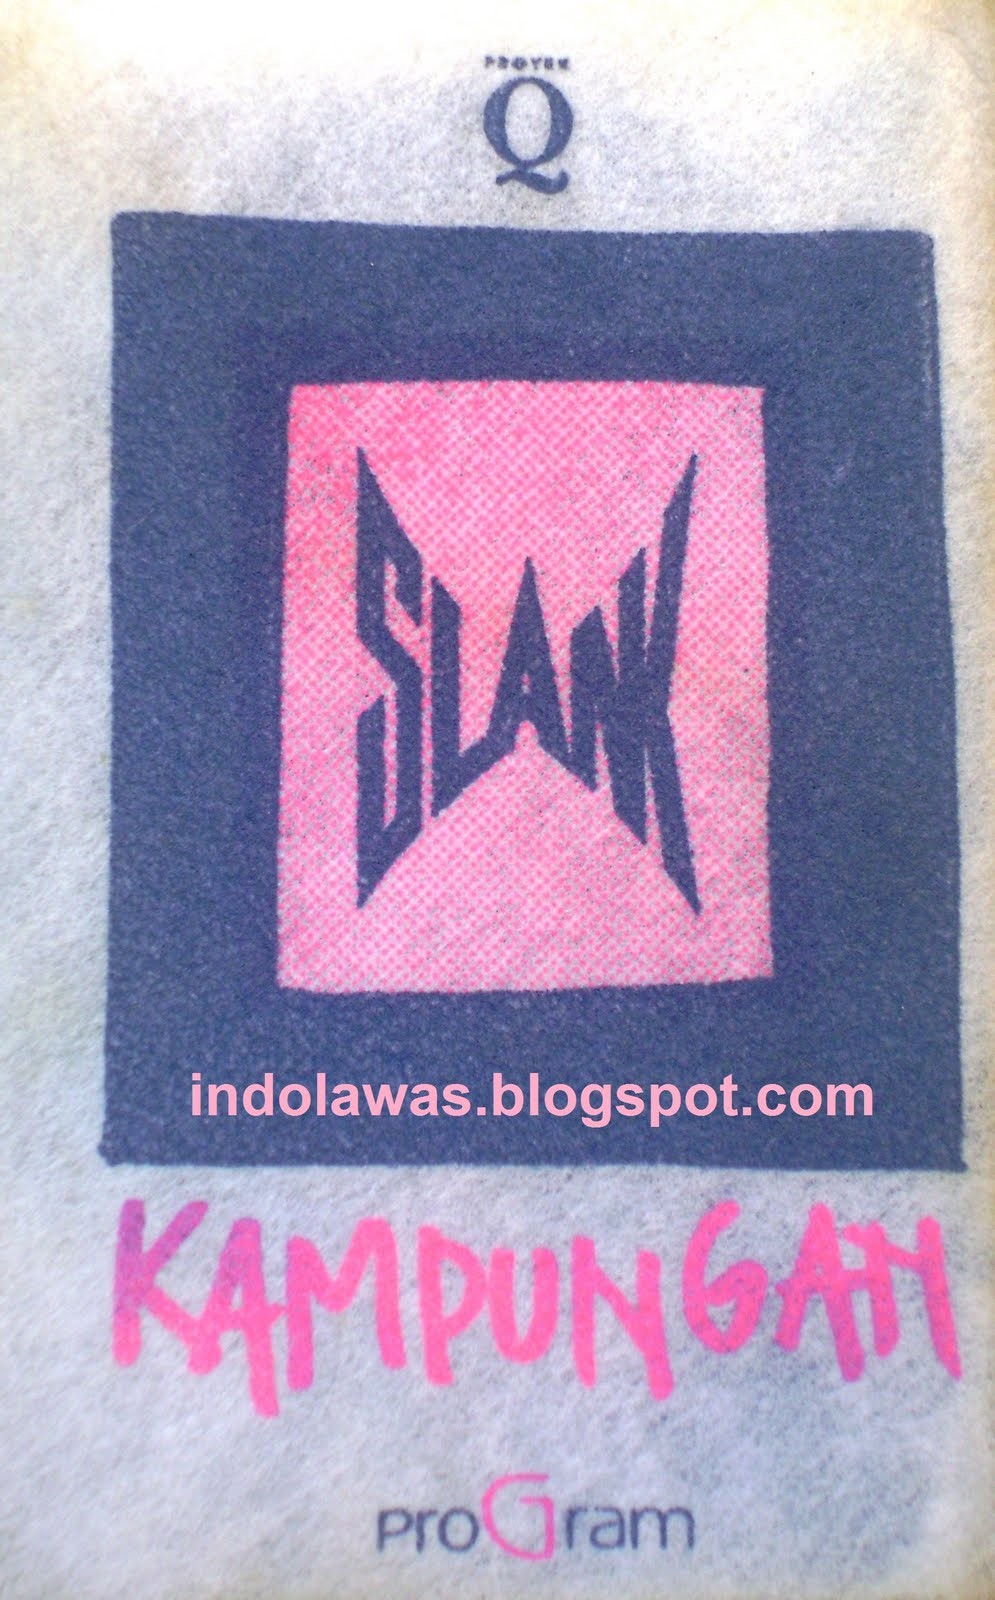 Download Kumpulan Lagu Full Album Slank